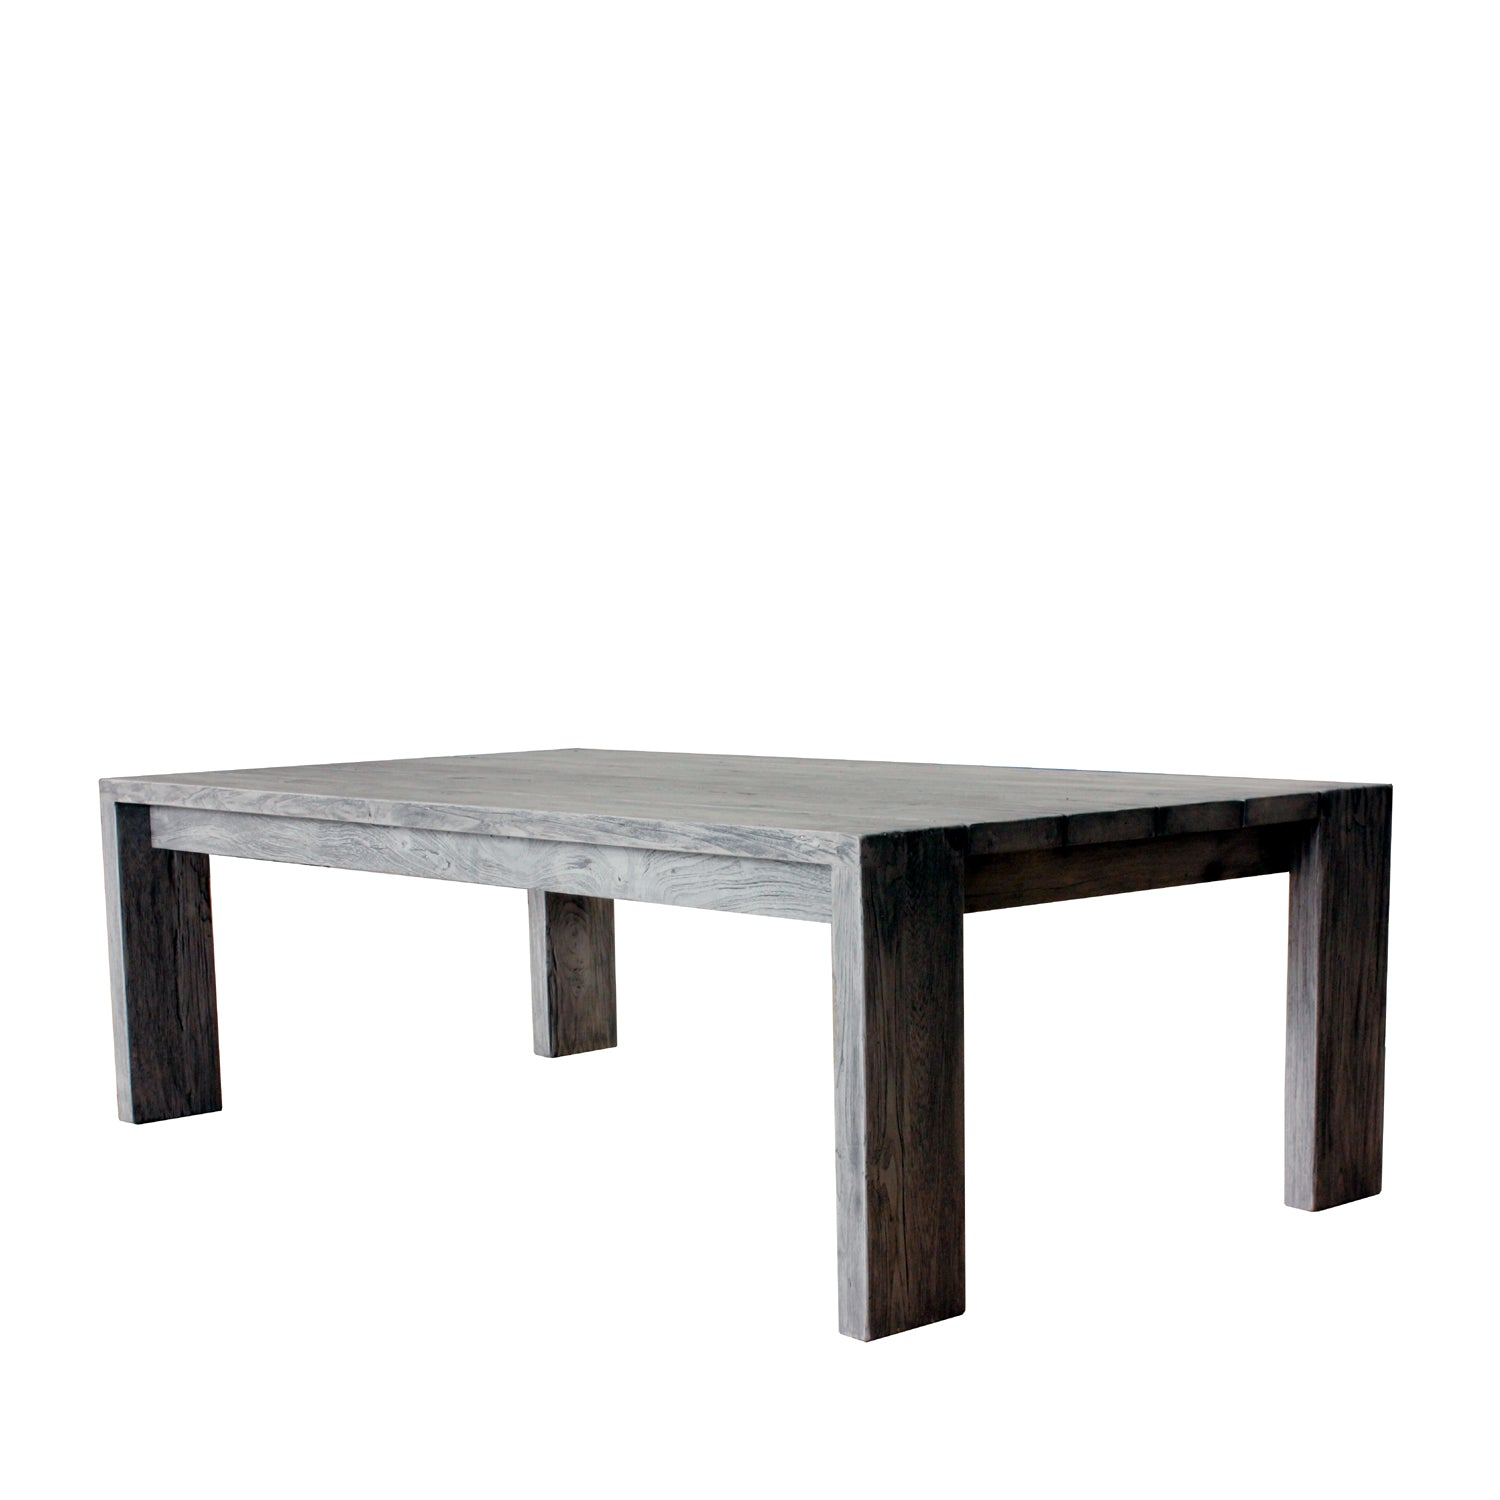 Reclaimed Teak Coffee Table.Outdoor Ralph Reclaimed Teak Coffee Table